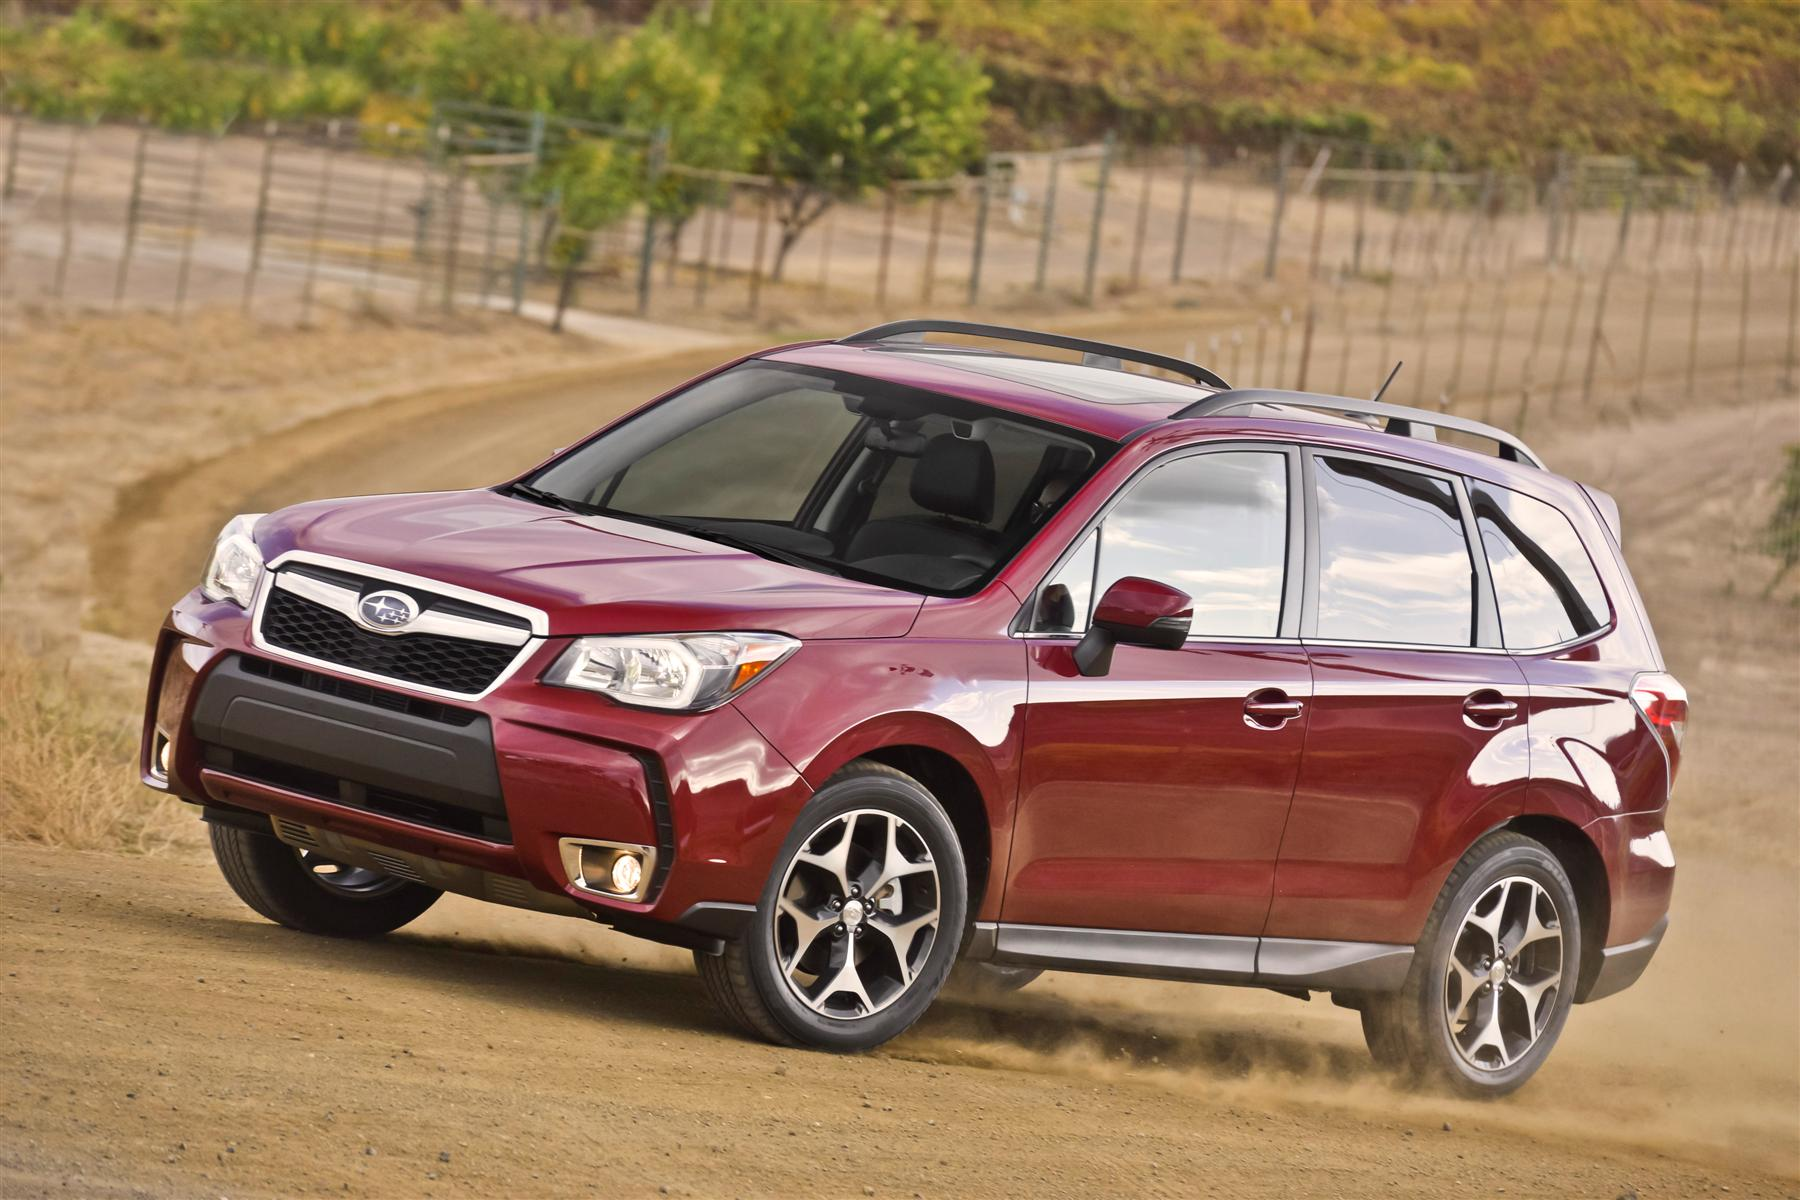 2014 subaru forester gets new turbo engine new on wheels groovecar. Black Bedroom Furniture Sets. Home Design Ideas